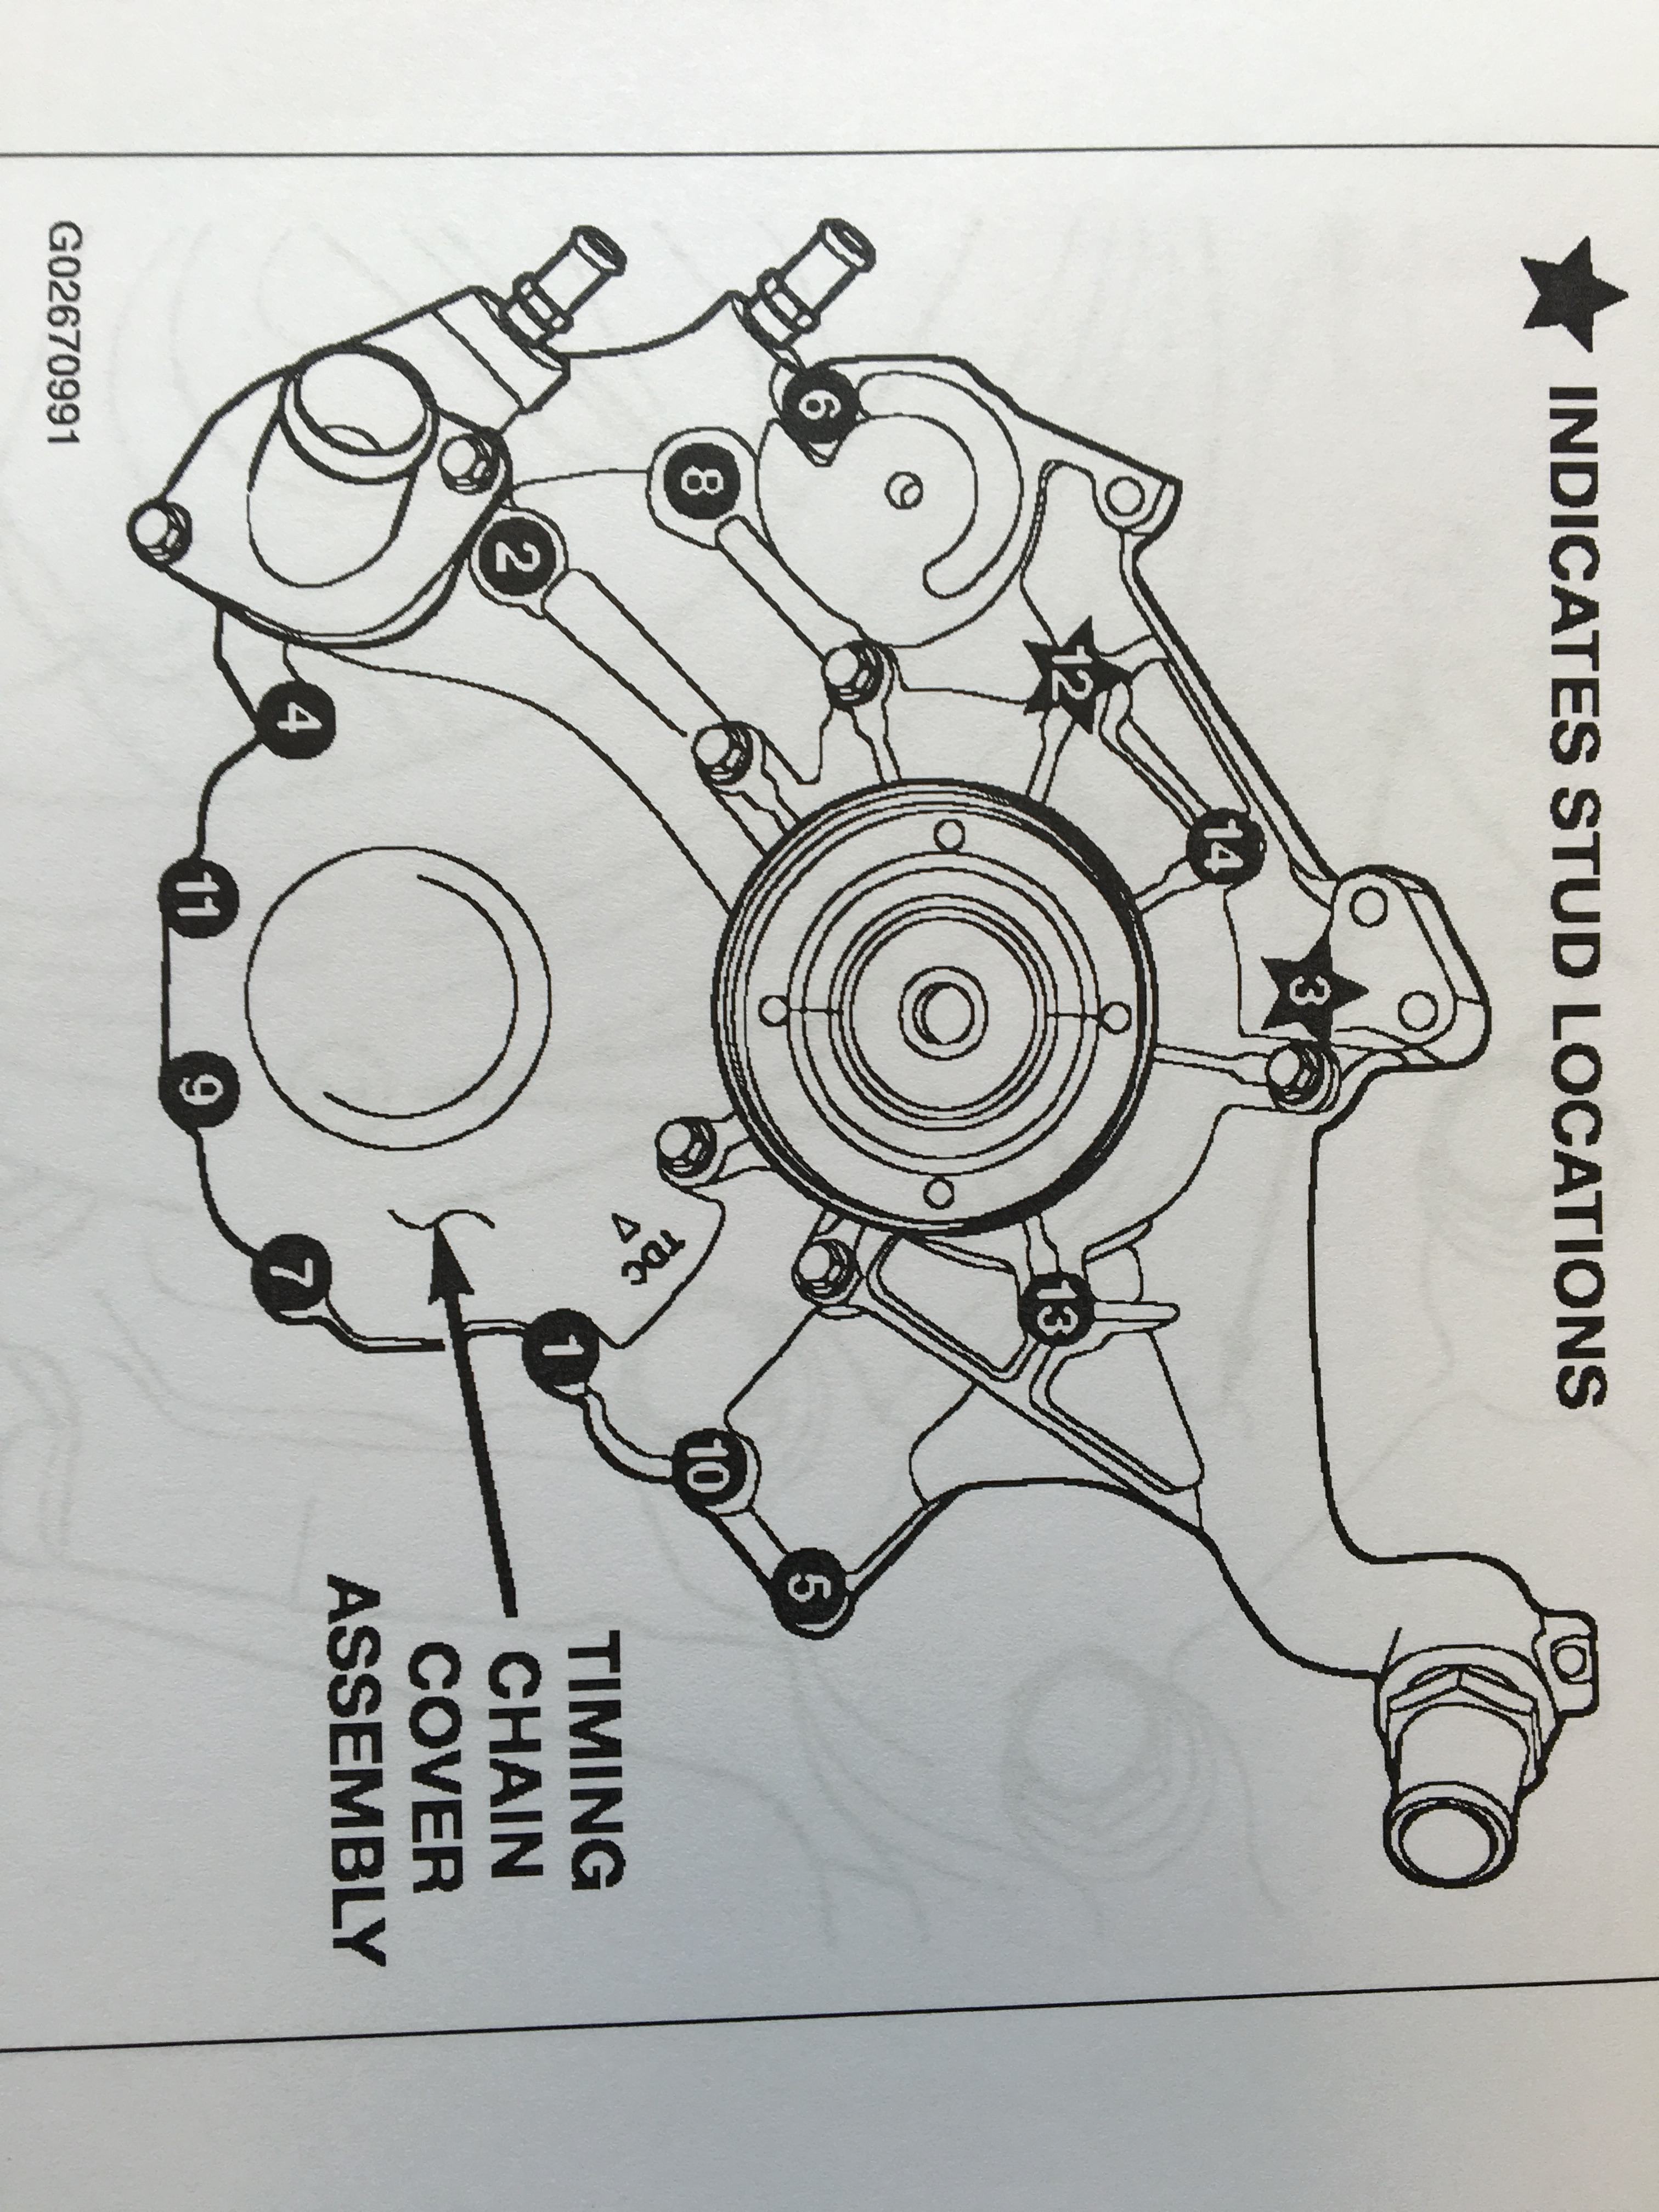 Surprising How To Replace A 3 7L Or 4 7L Timing Chain S And Or Components From Wiring Cloud Intelaidewilluminateatxorg